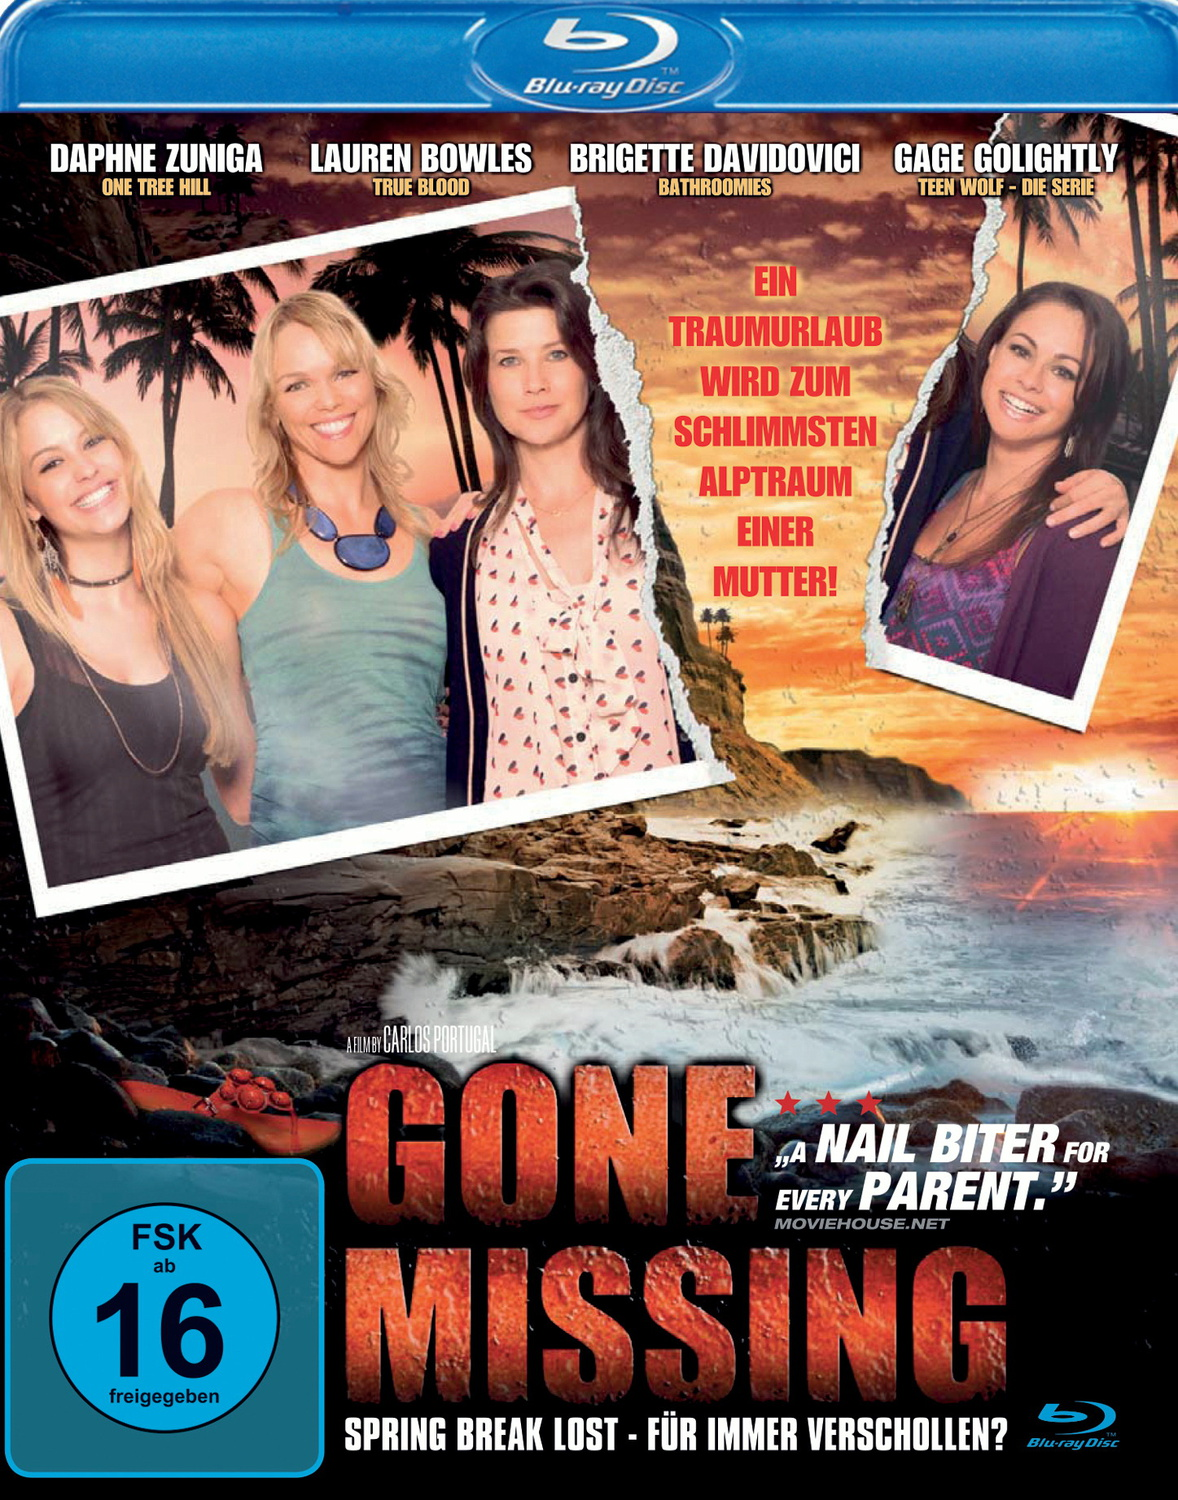 Gone Missing - Spring Break Lost - Für immer verschollen?